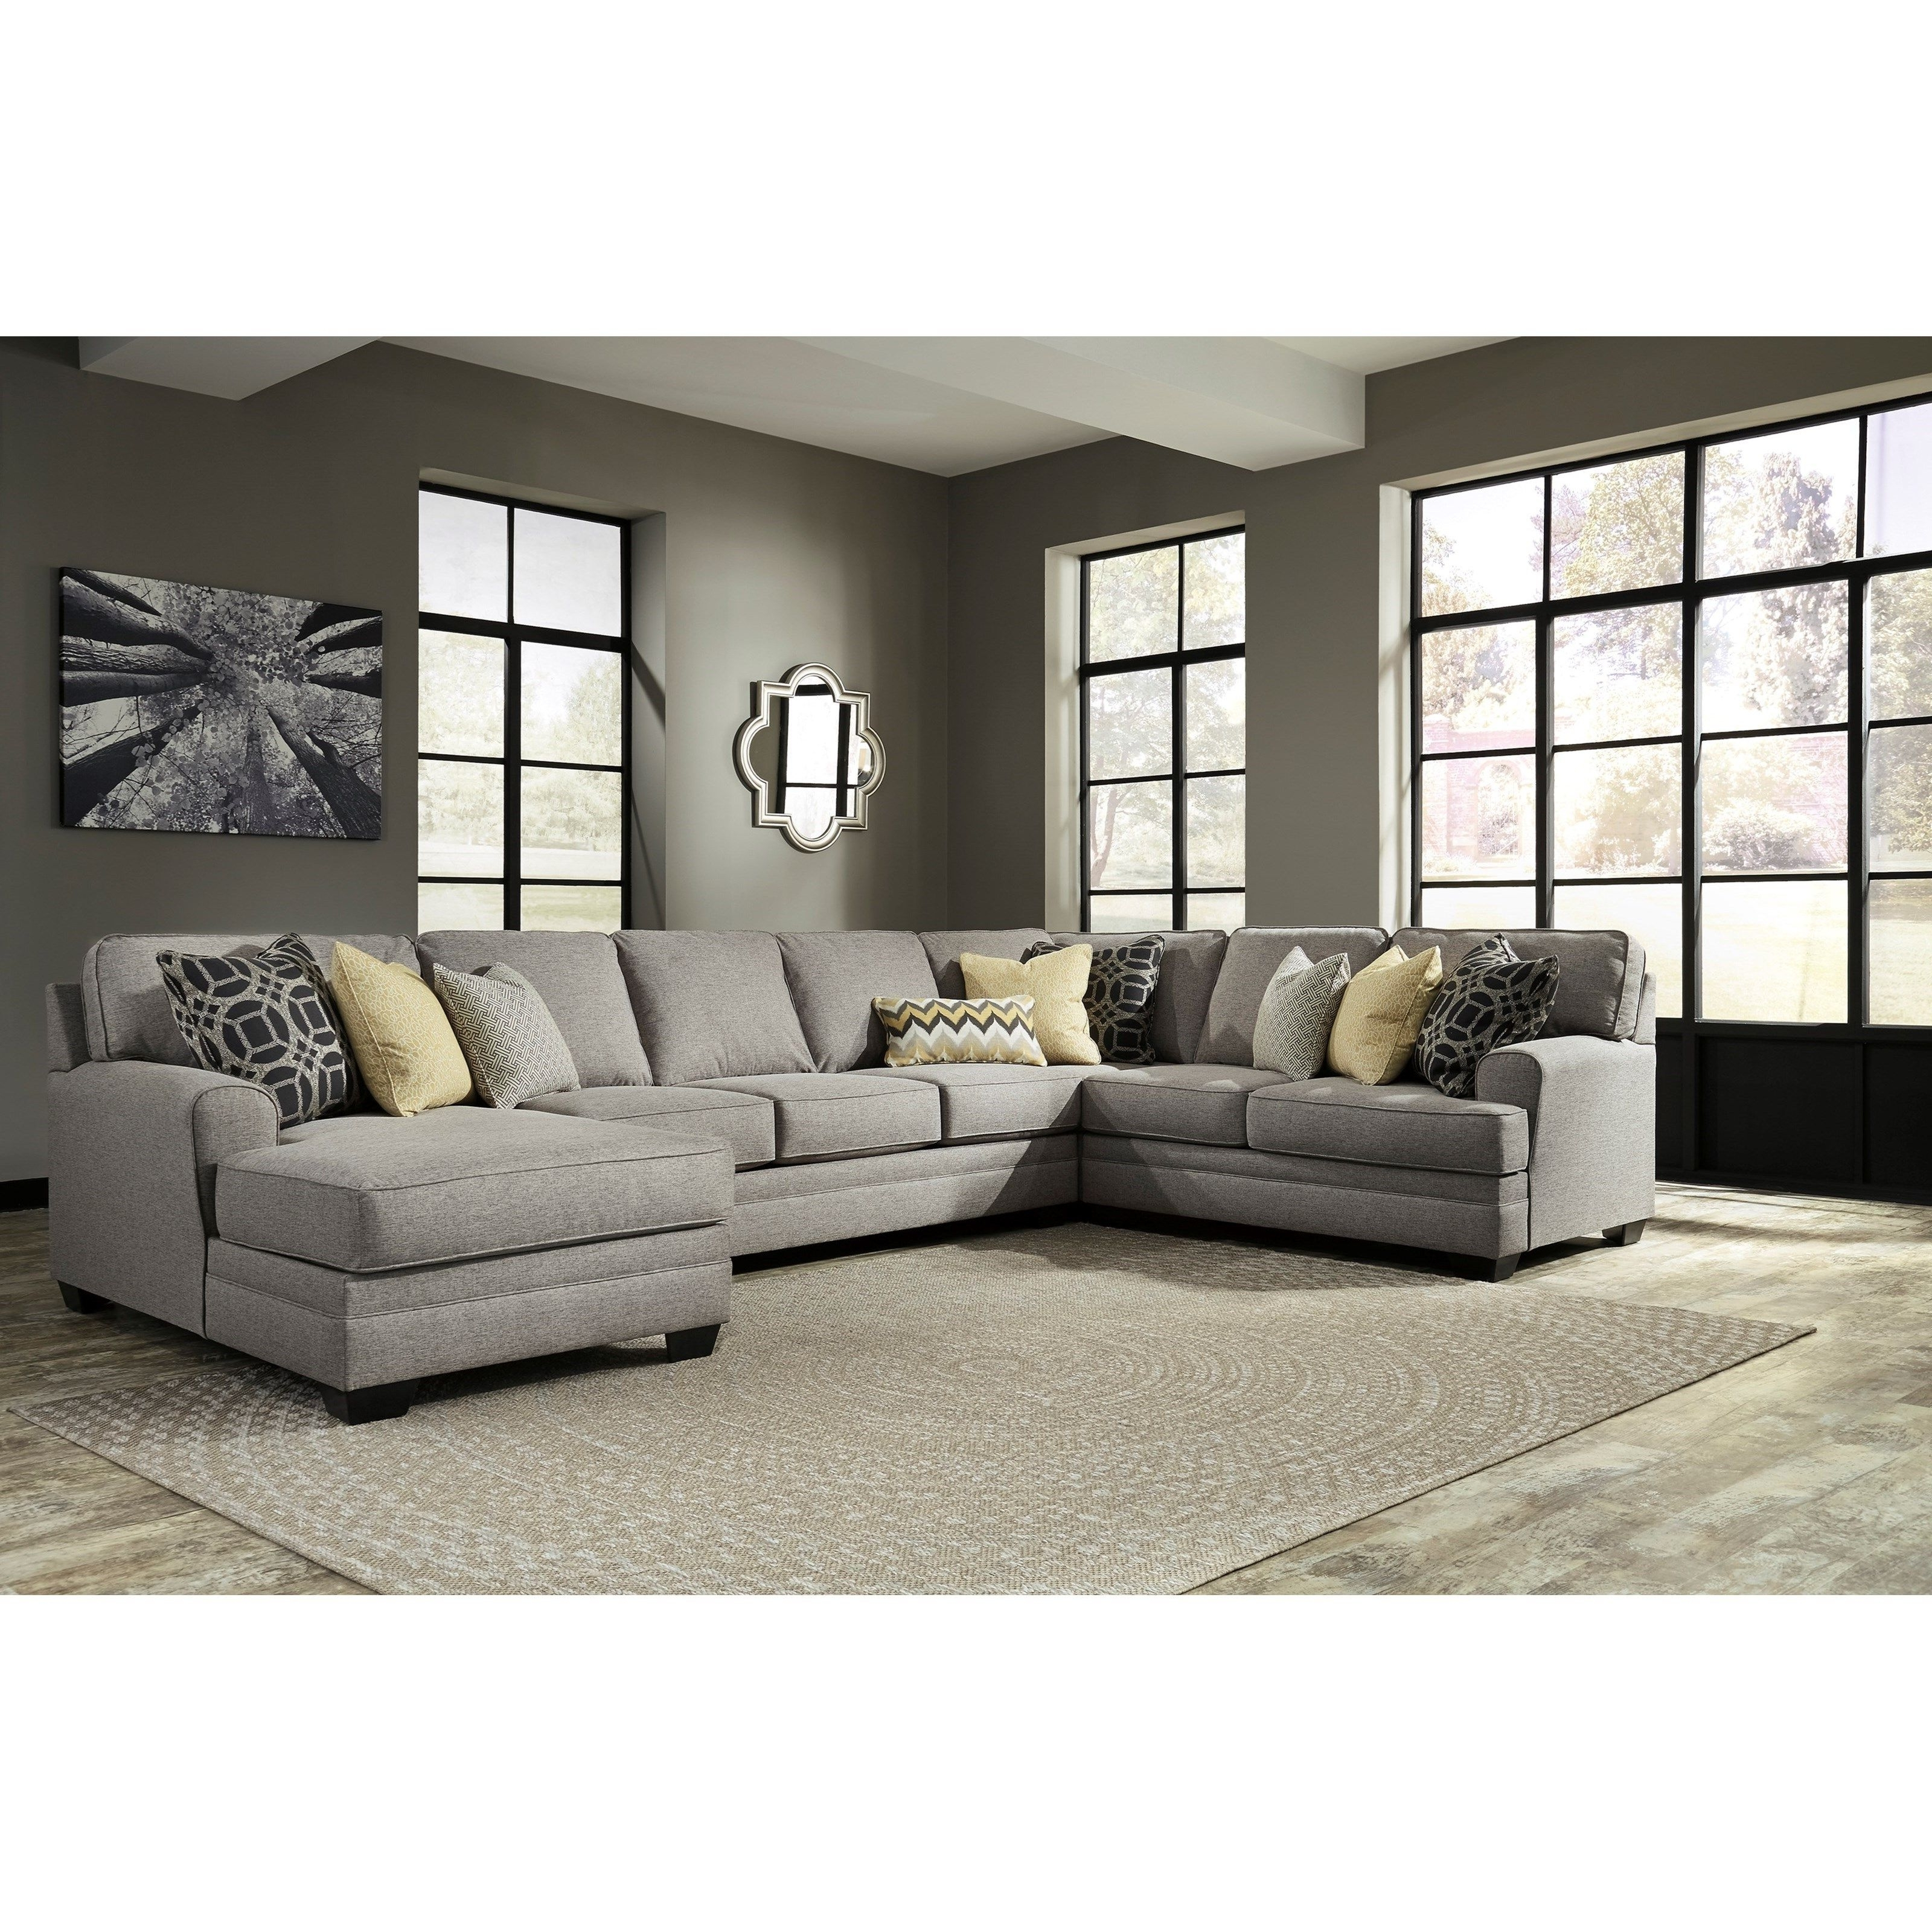 Preferred Contemporary 4 Piece Sectional With Chaise & Armless Sofa (View 10 of 20)